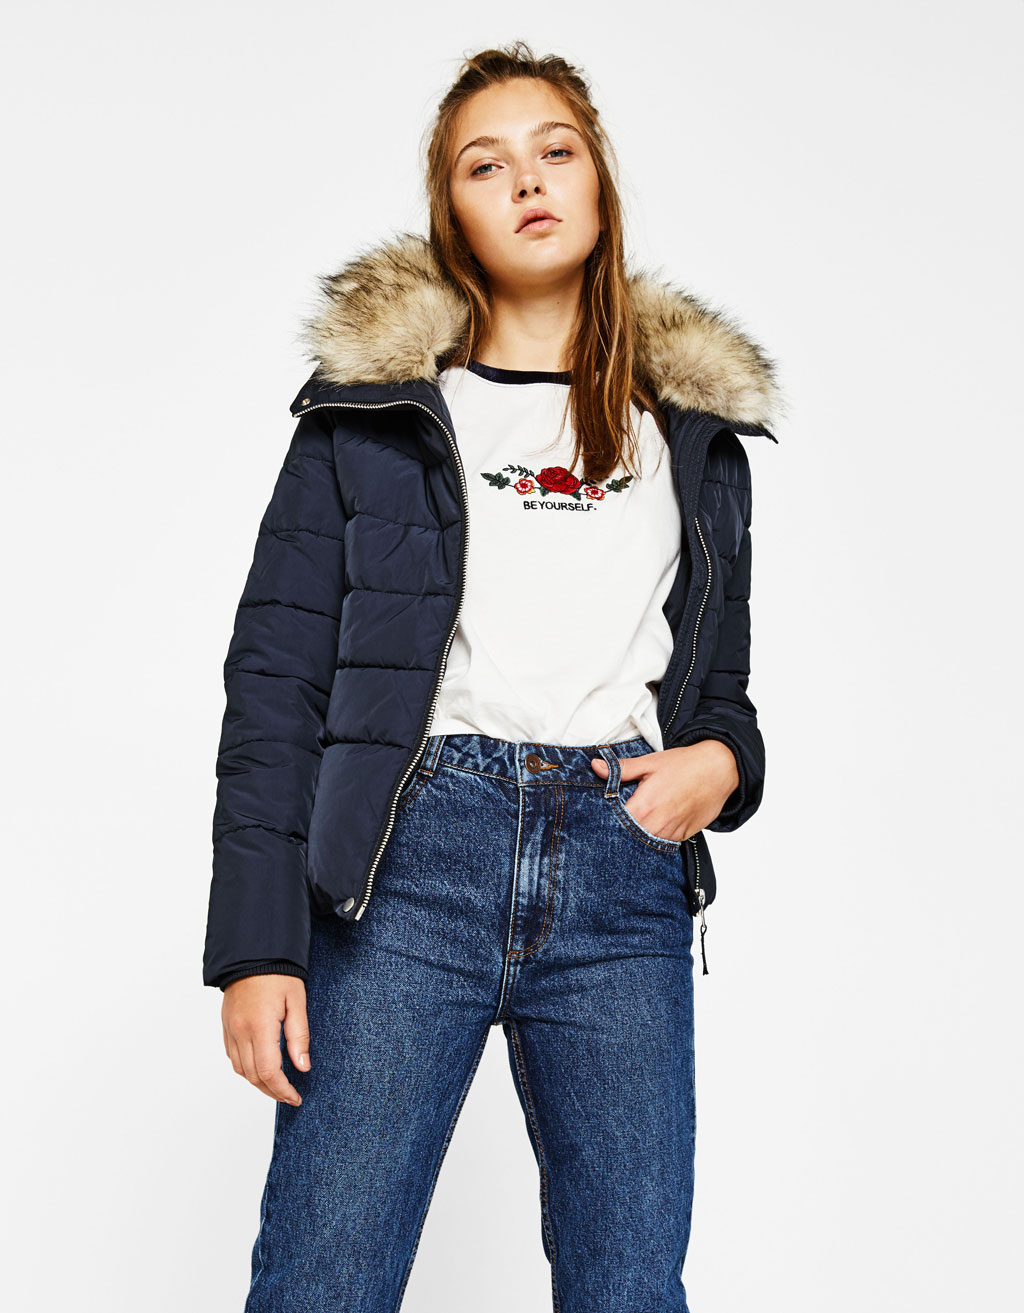 Bershka jacken sale